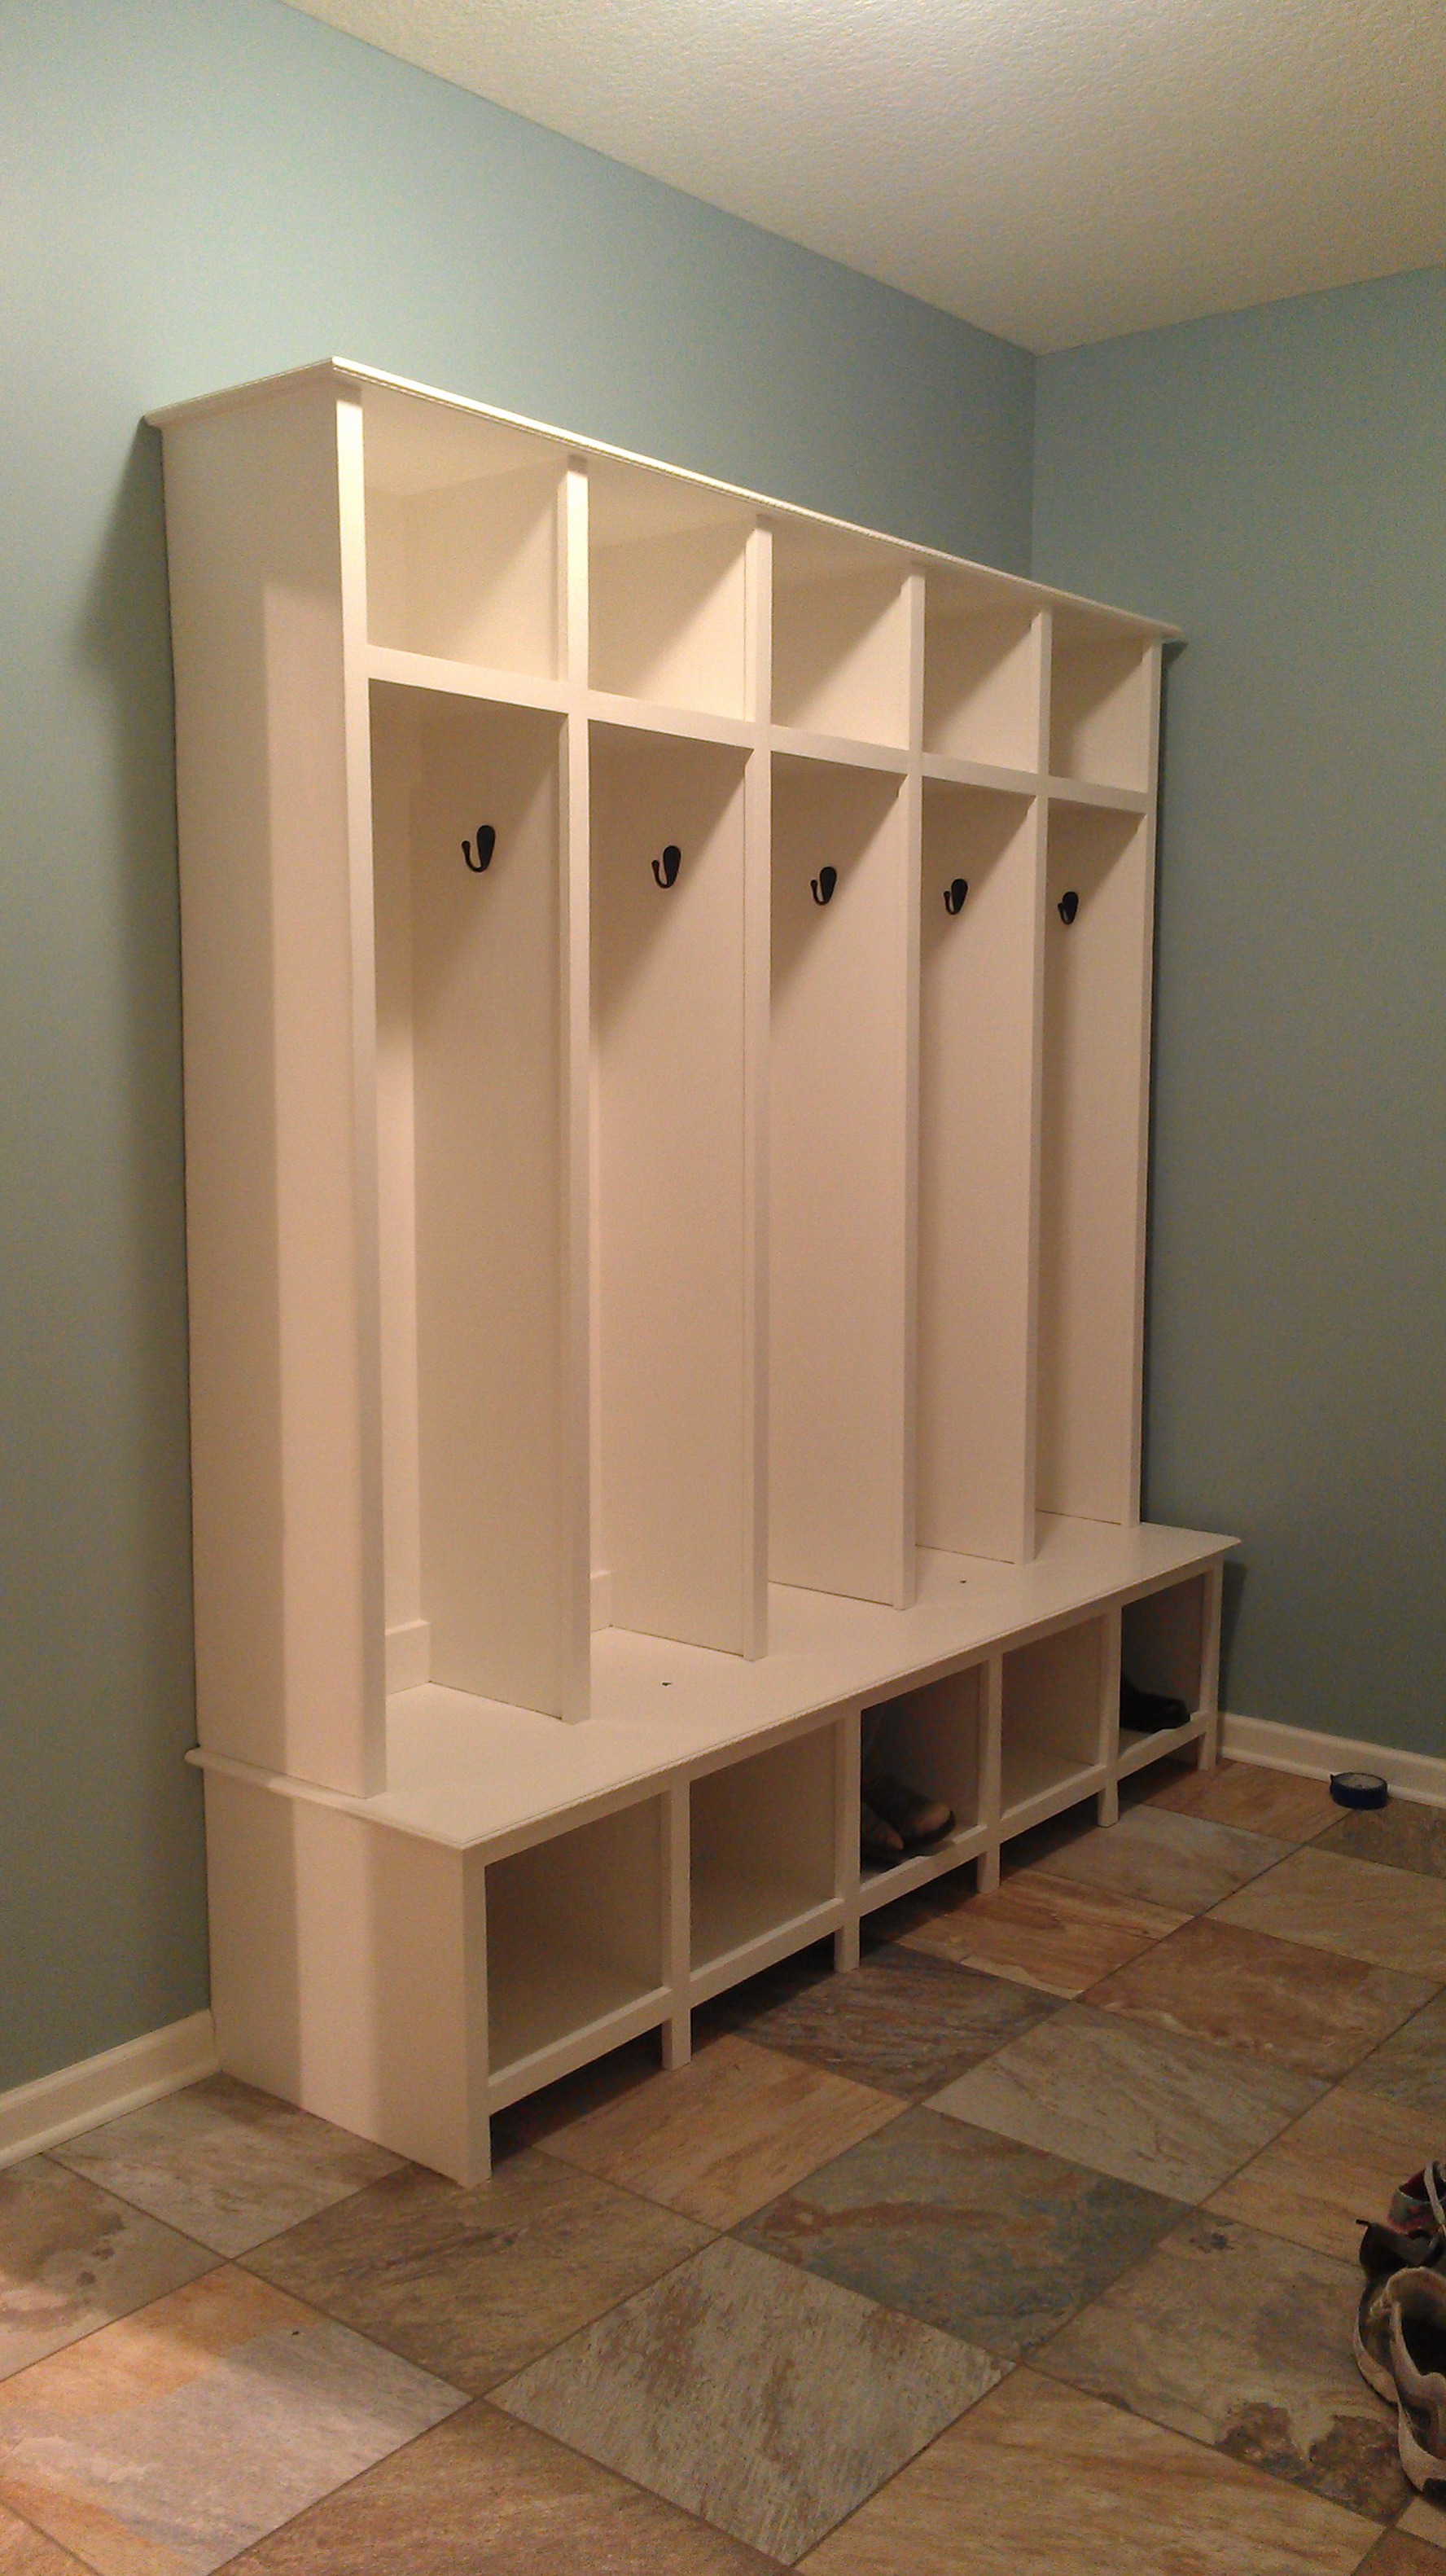 Mudroom Lockers With Bench Ikea Home Design Ideas